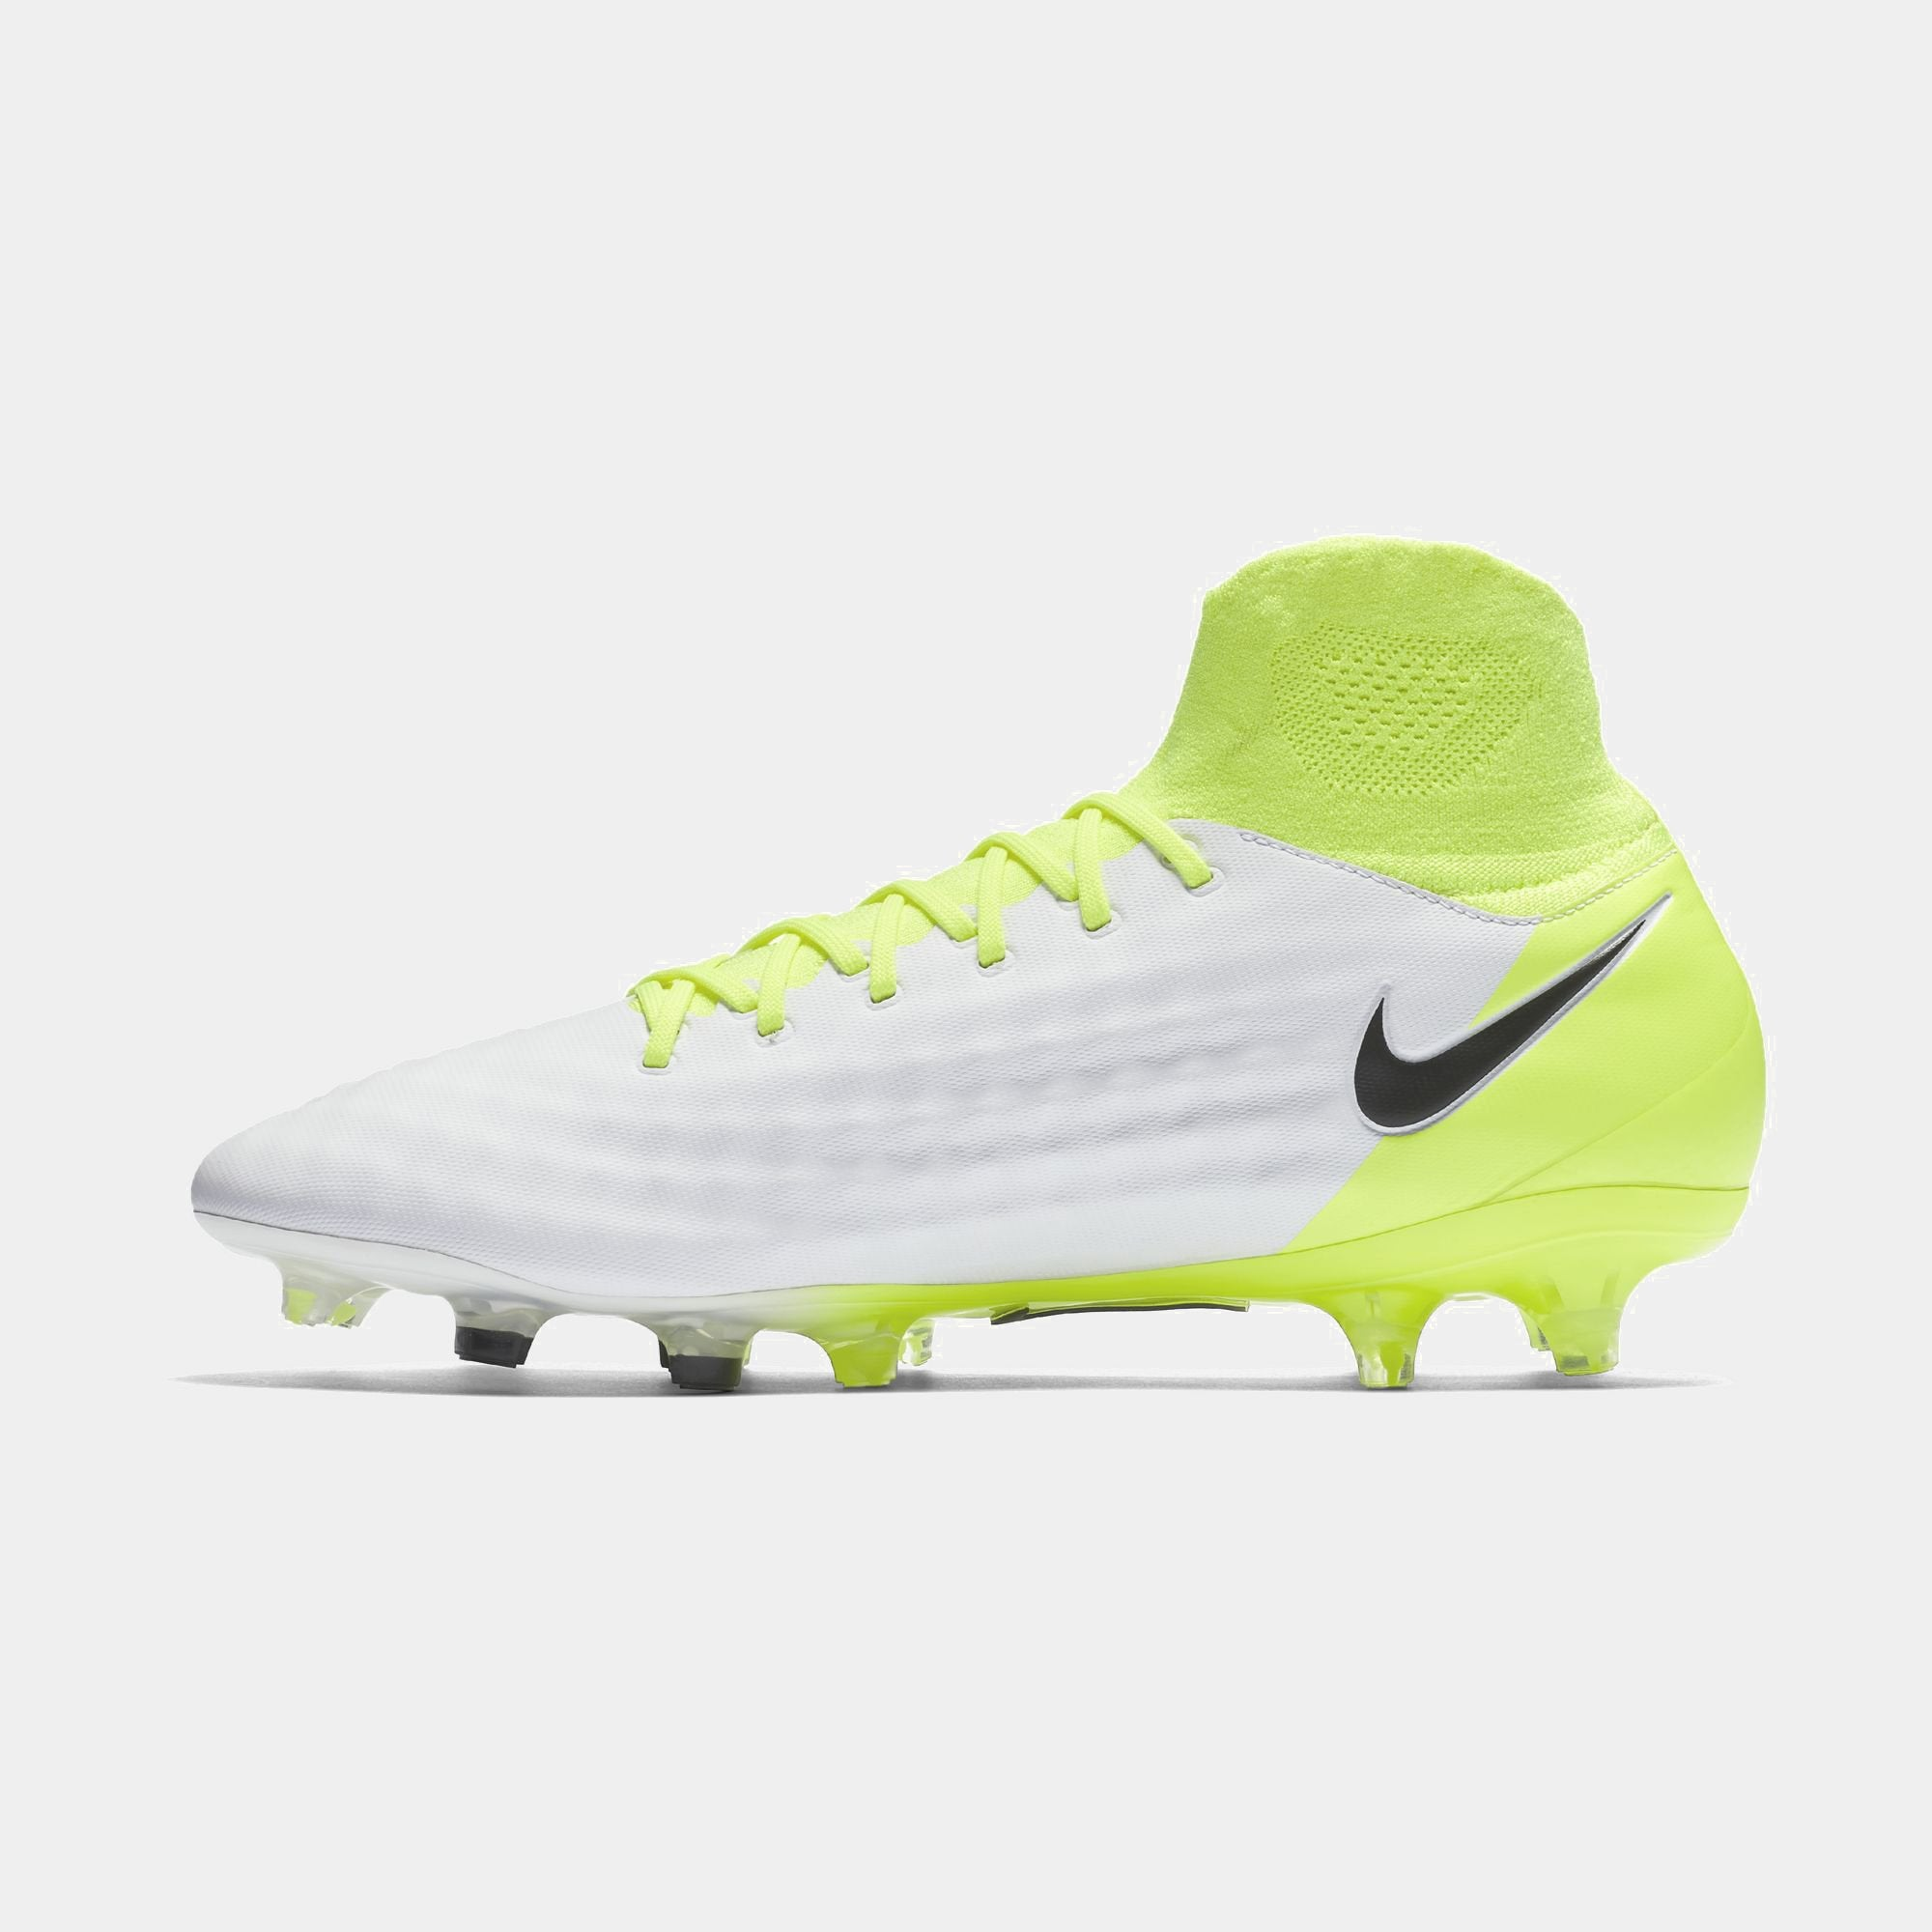 5fba6857a089 Men's Nike Magista Orden II (FG) Firm-Ground Football Boot – Branded Feet